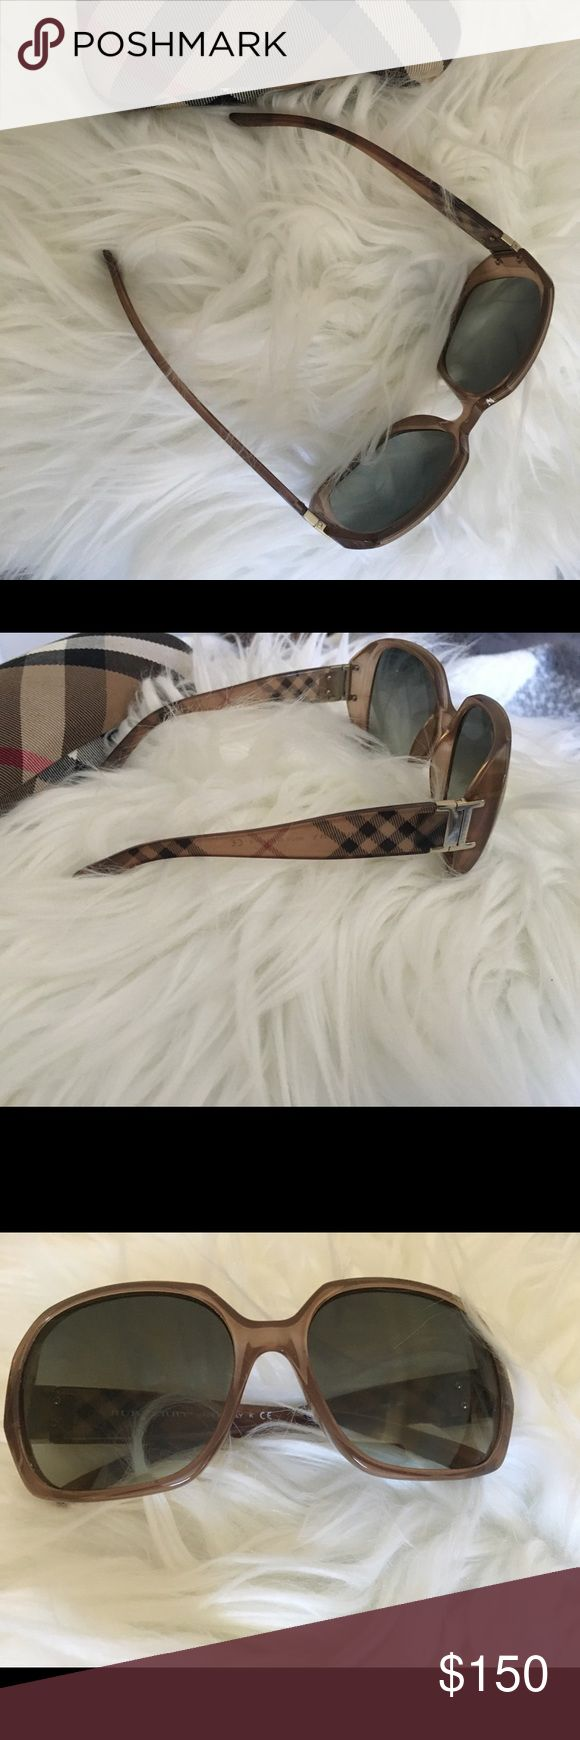 Used Burberry sunglasses Used Burberry sunglasses I have other items listed in my closet. If you're interested in this, you might be interested in something else I have up. Check it out. :) Happy shopping! Burberry Accessories Sunglasses